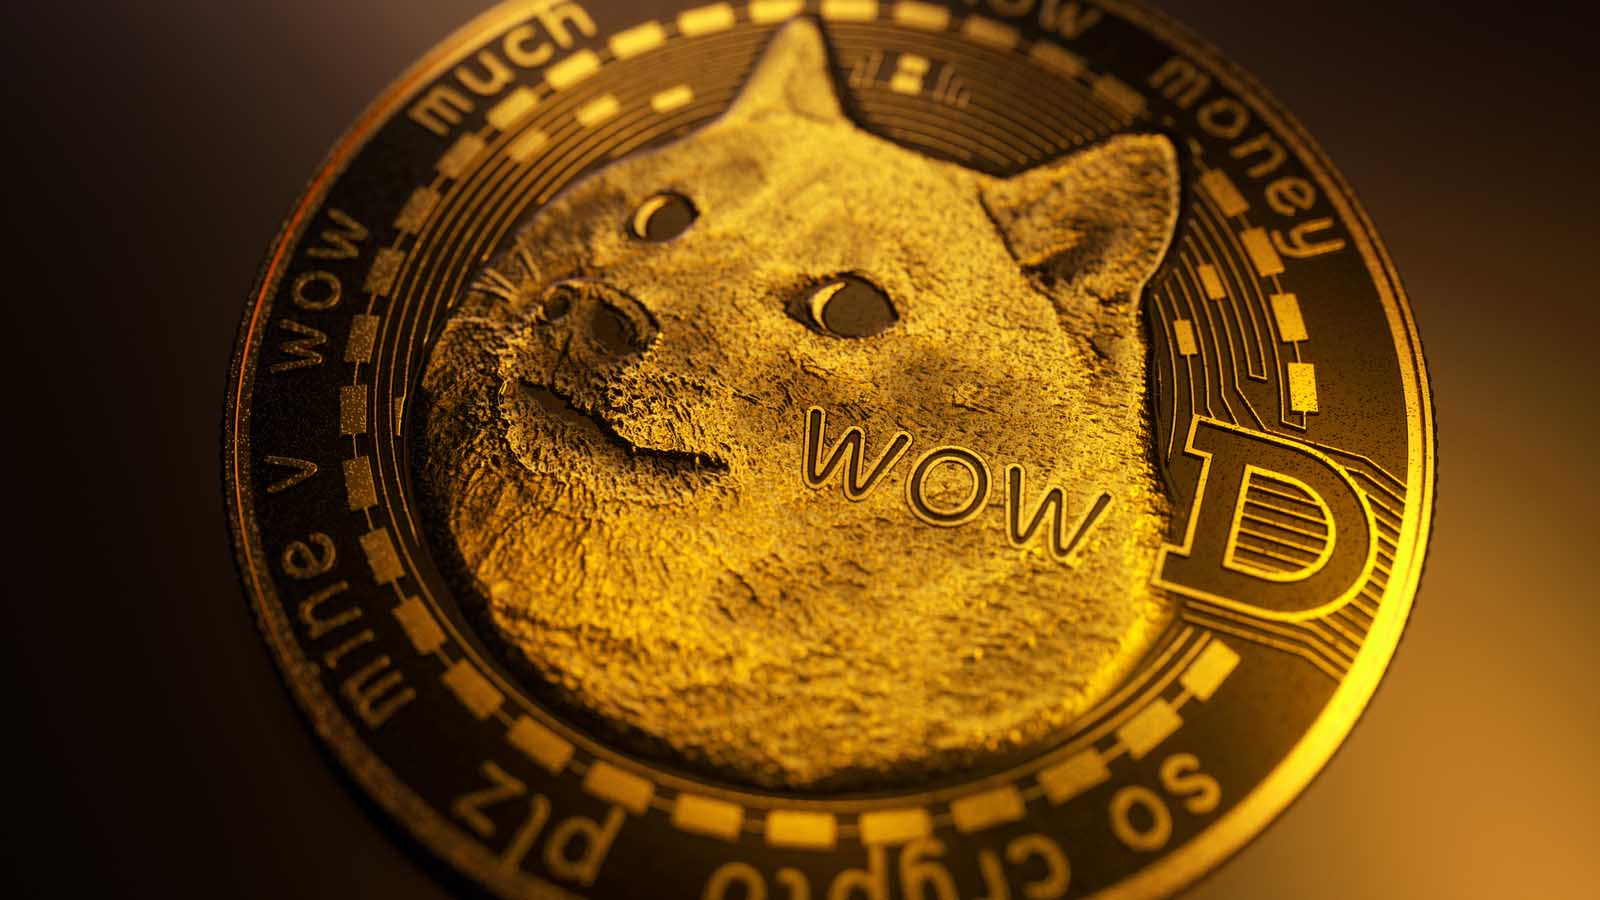 Dogecoin (DOGE) Price Predictions: Where Will DOGE Go ...